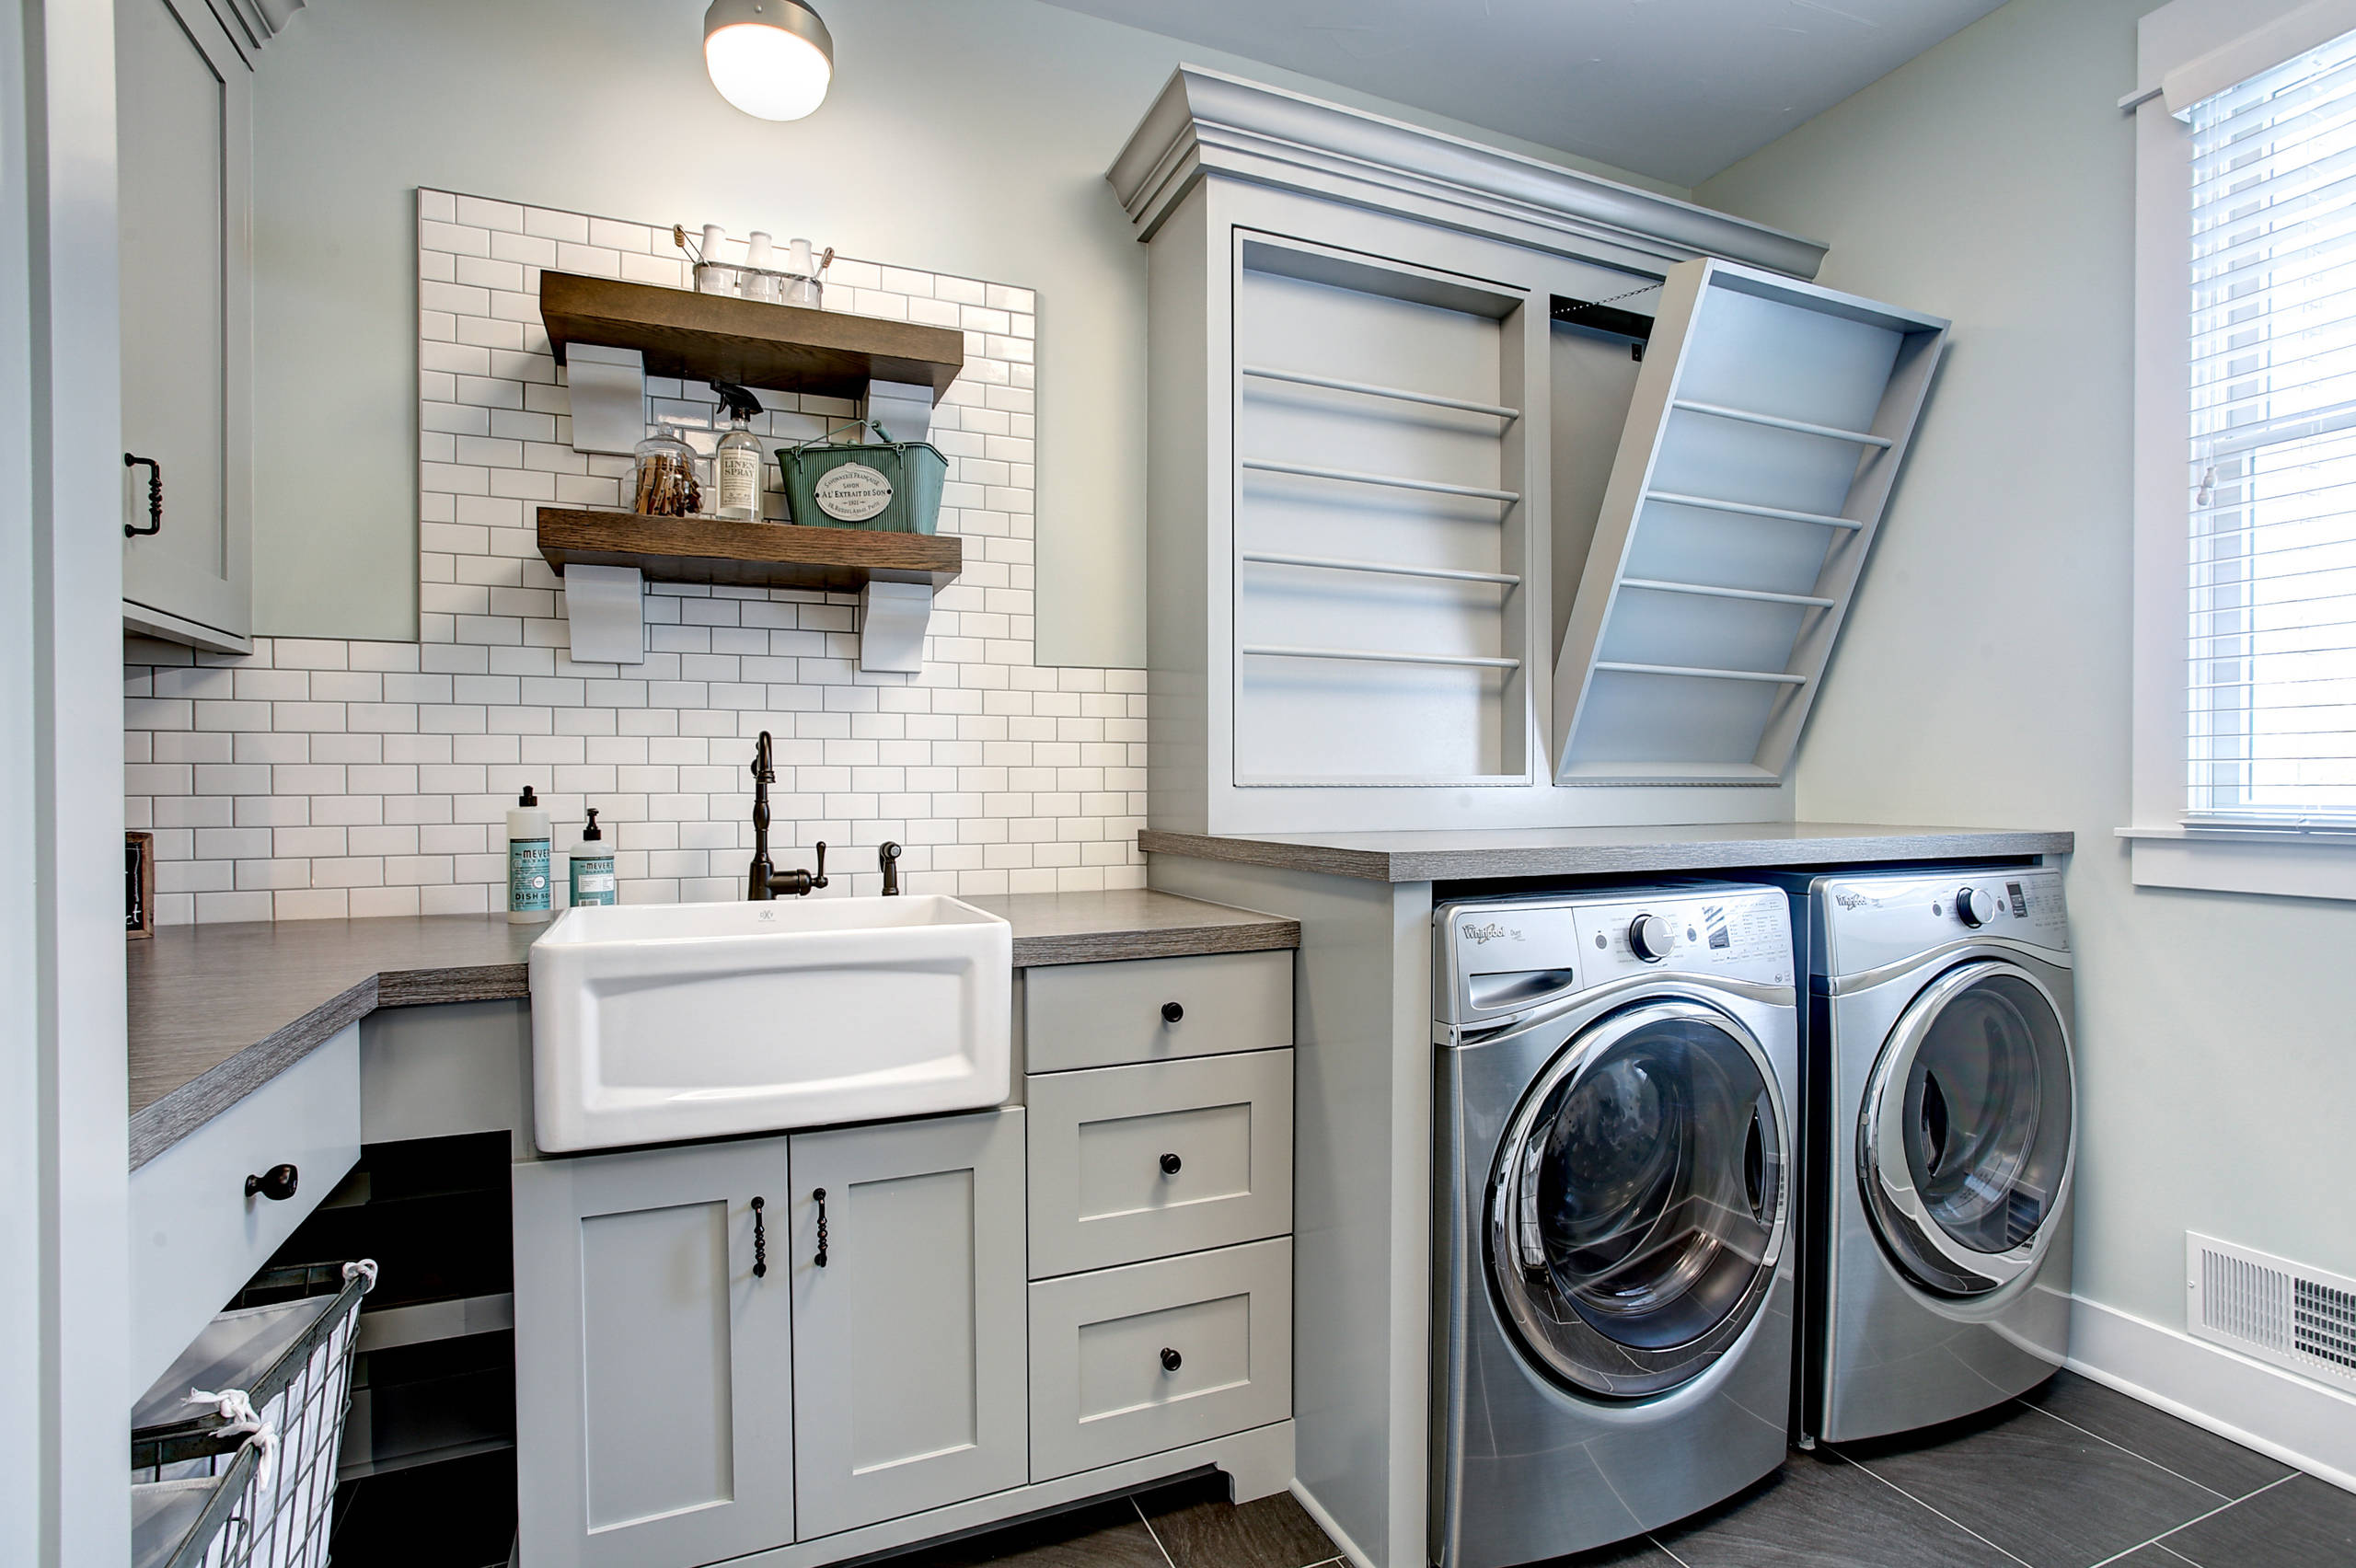 75 Beautiful Laundry Room Pictures Ideas December 2020 Houzz